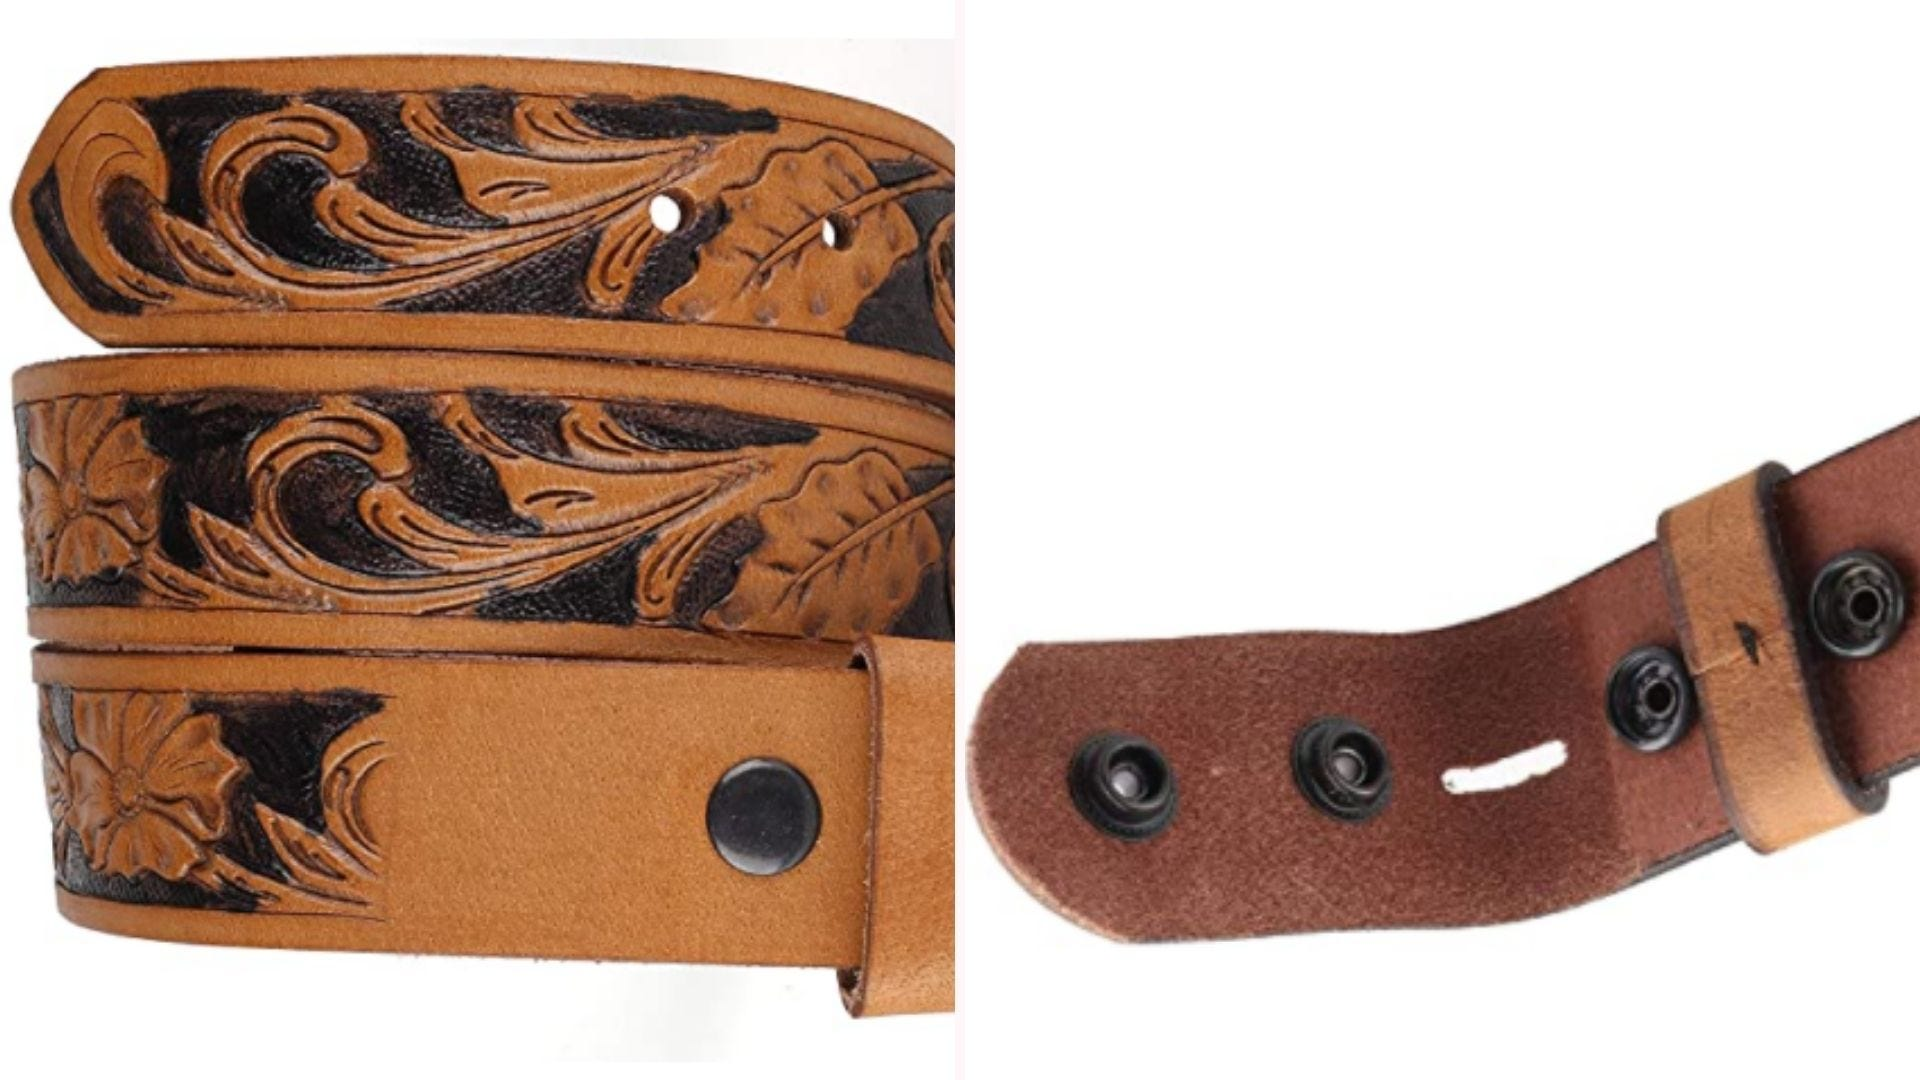 On the left, a cowhide leather belt featuring an floral design sits in contrast to the black recesses of its embossing. On the right, a closeup view of the belt's button clasps where a belt buckle will be locked into place.